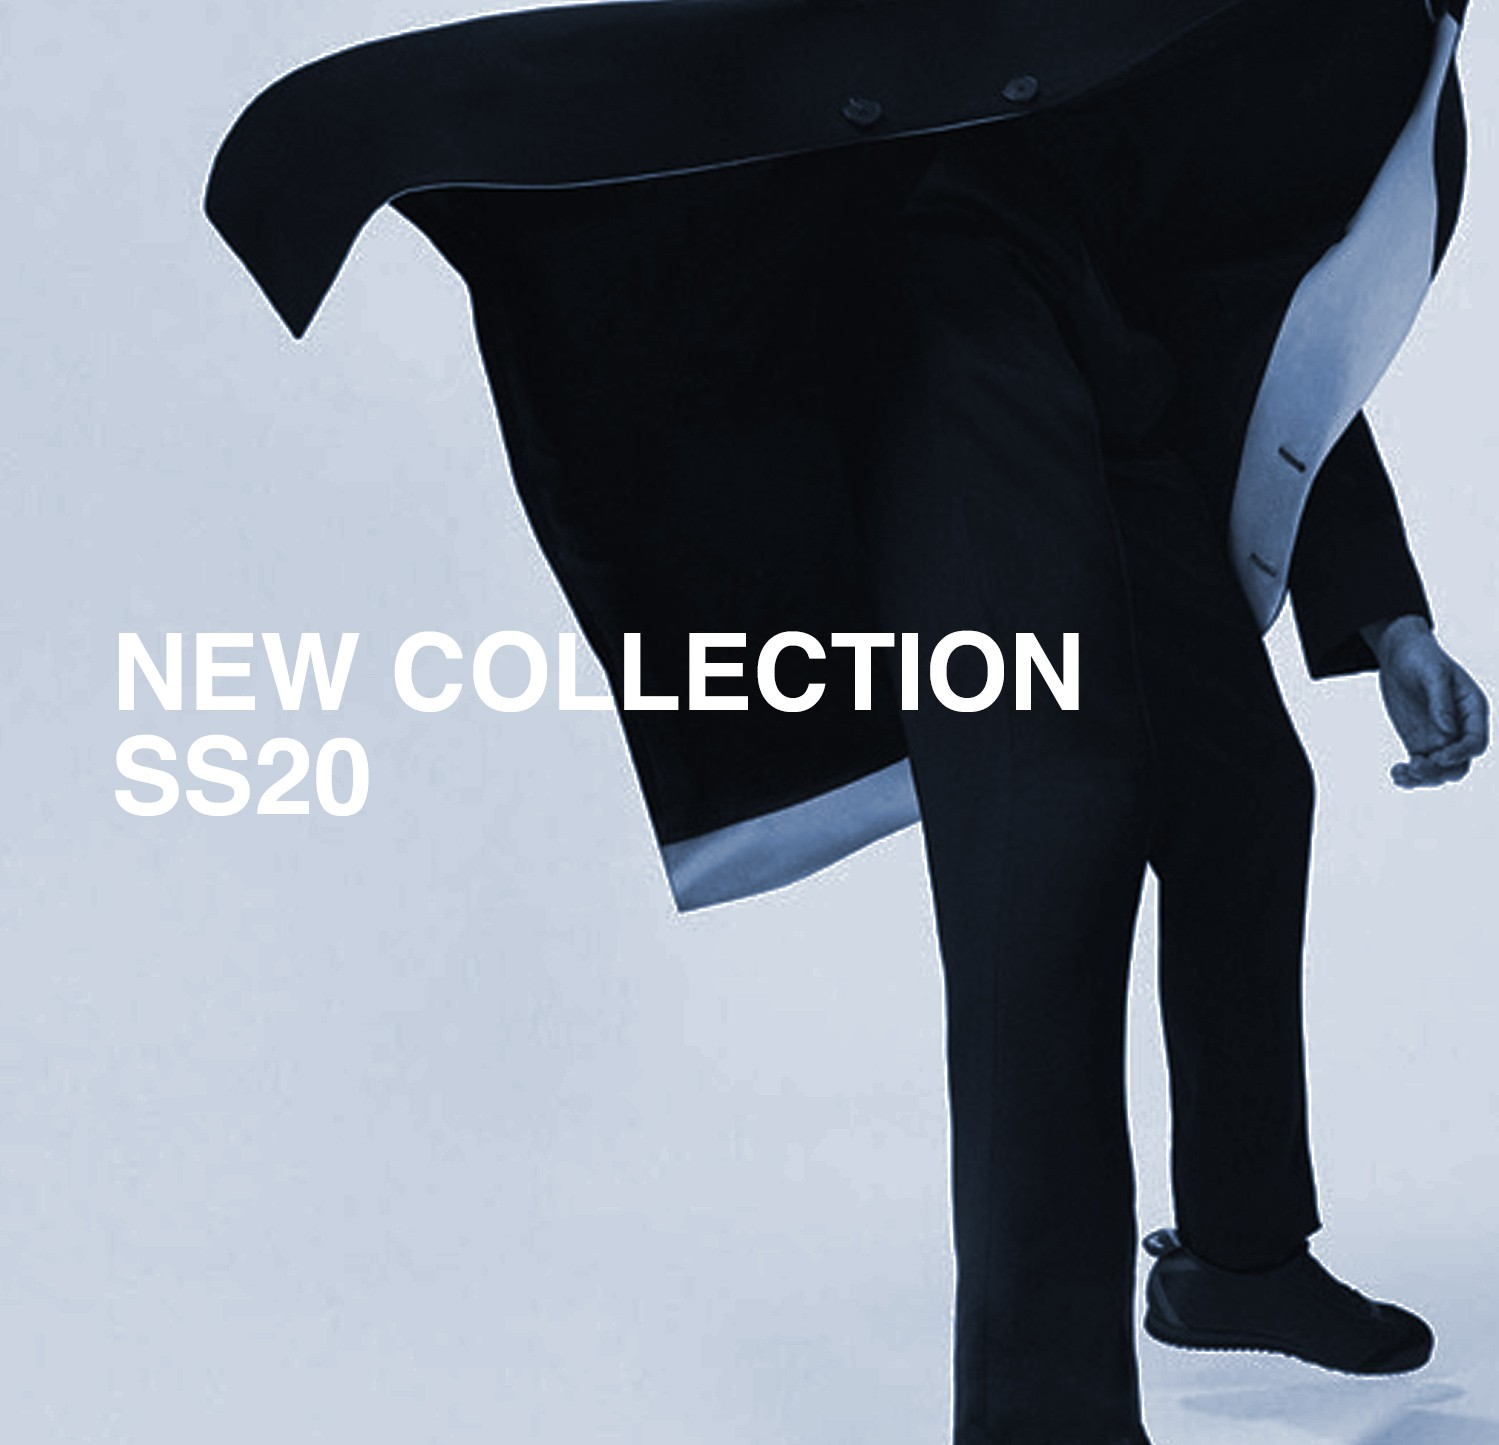 NEW COLLECTION SS20